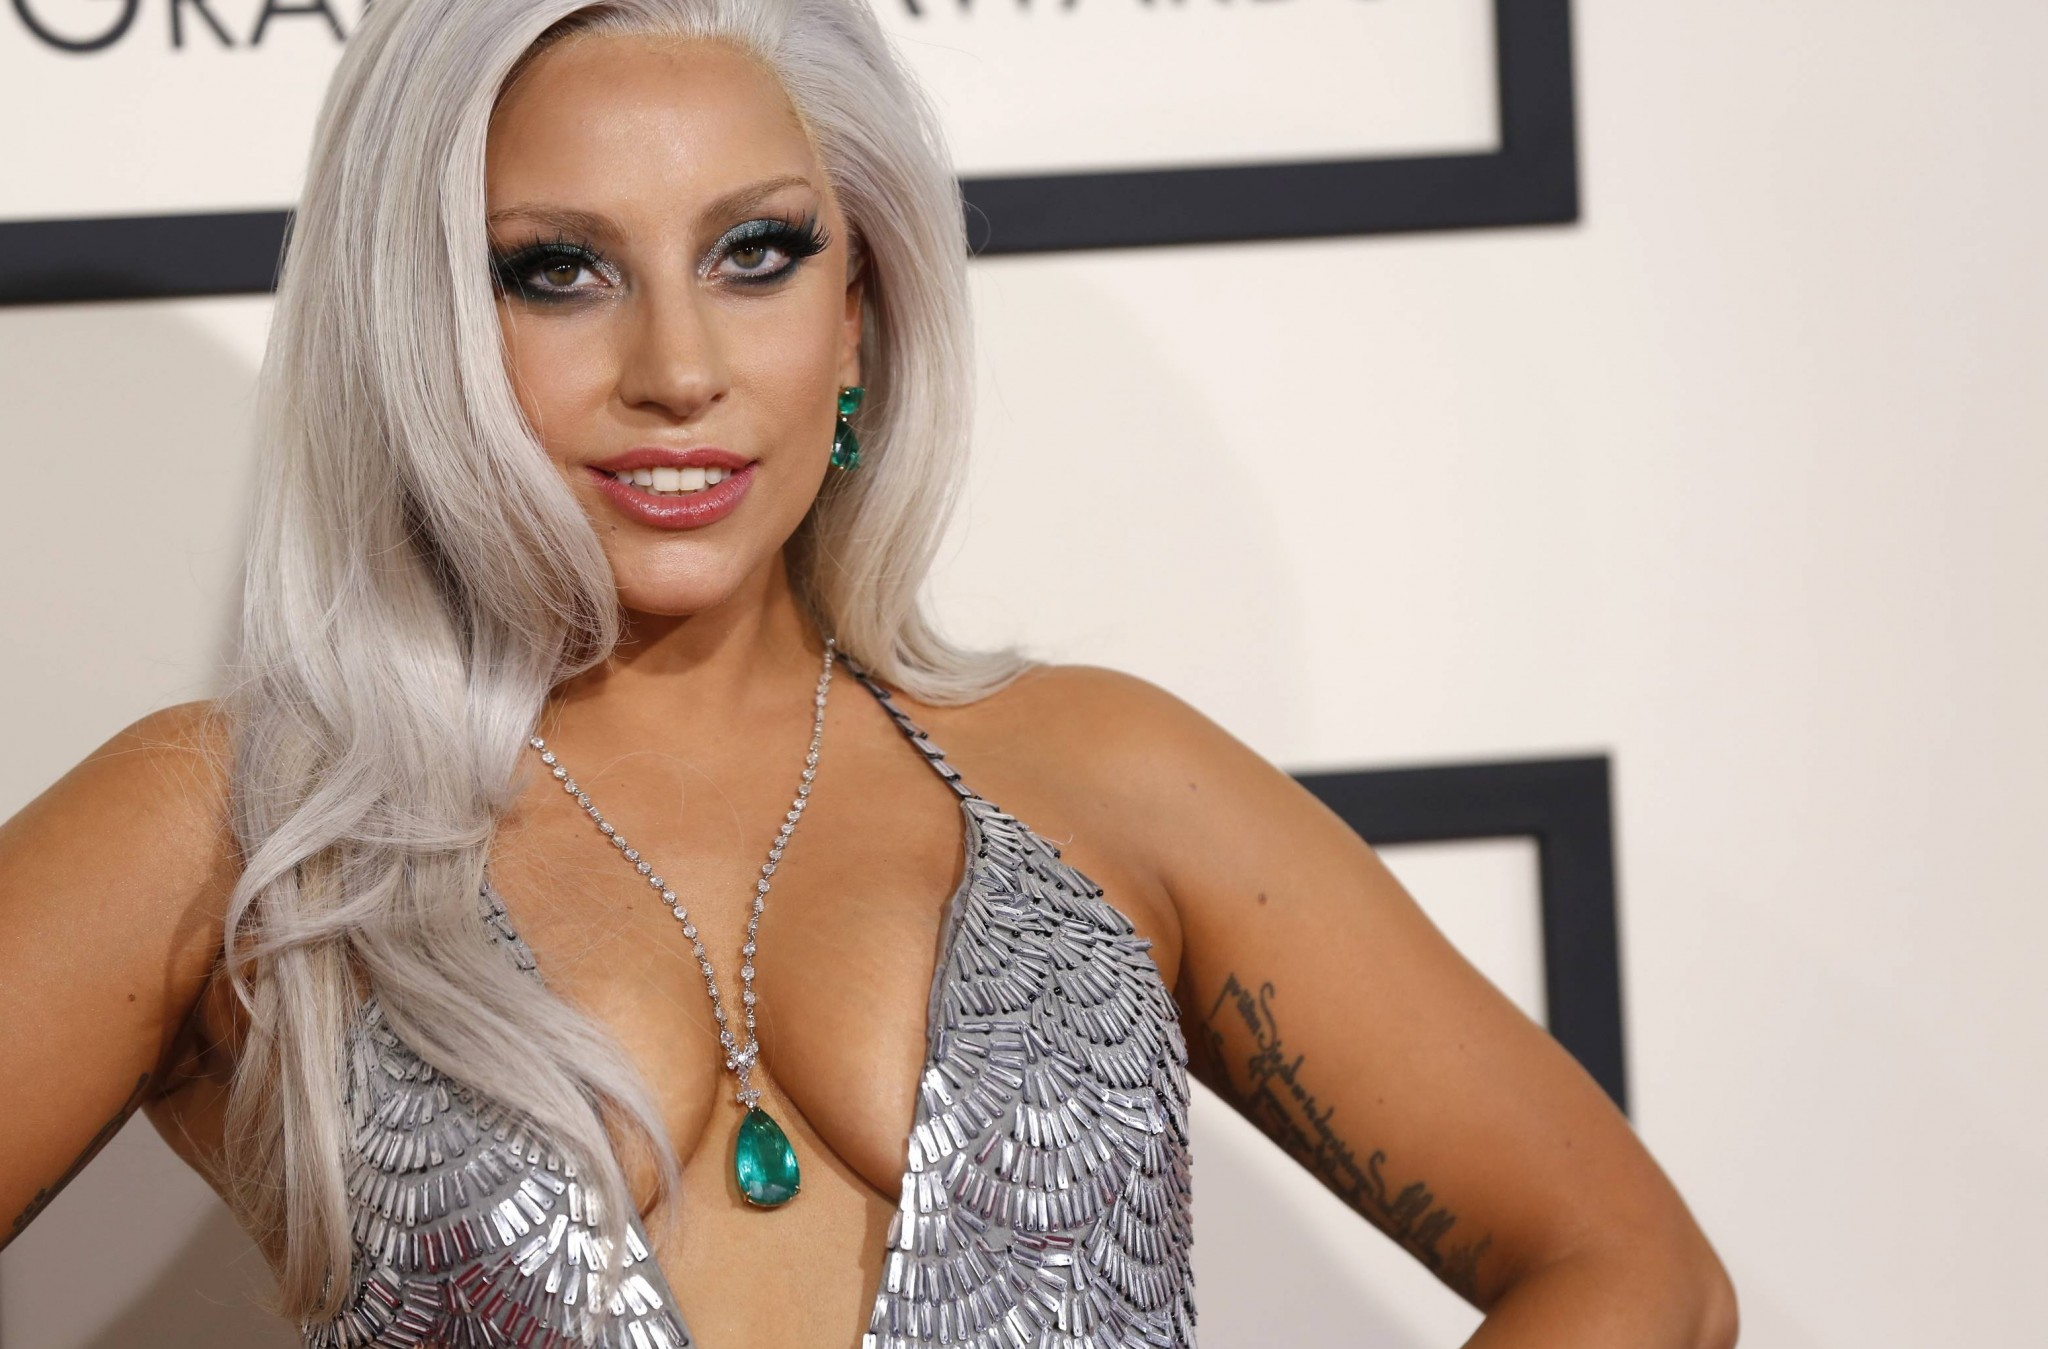 lady-gaga-cleavage-at-the-grammy-awards-5